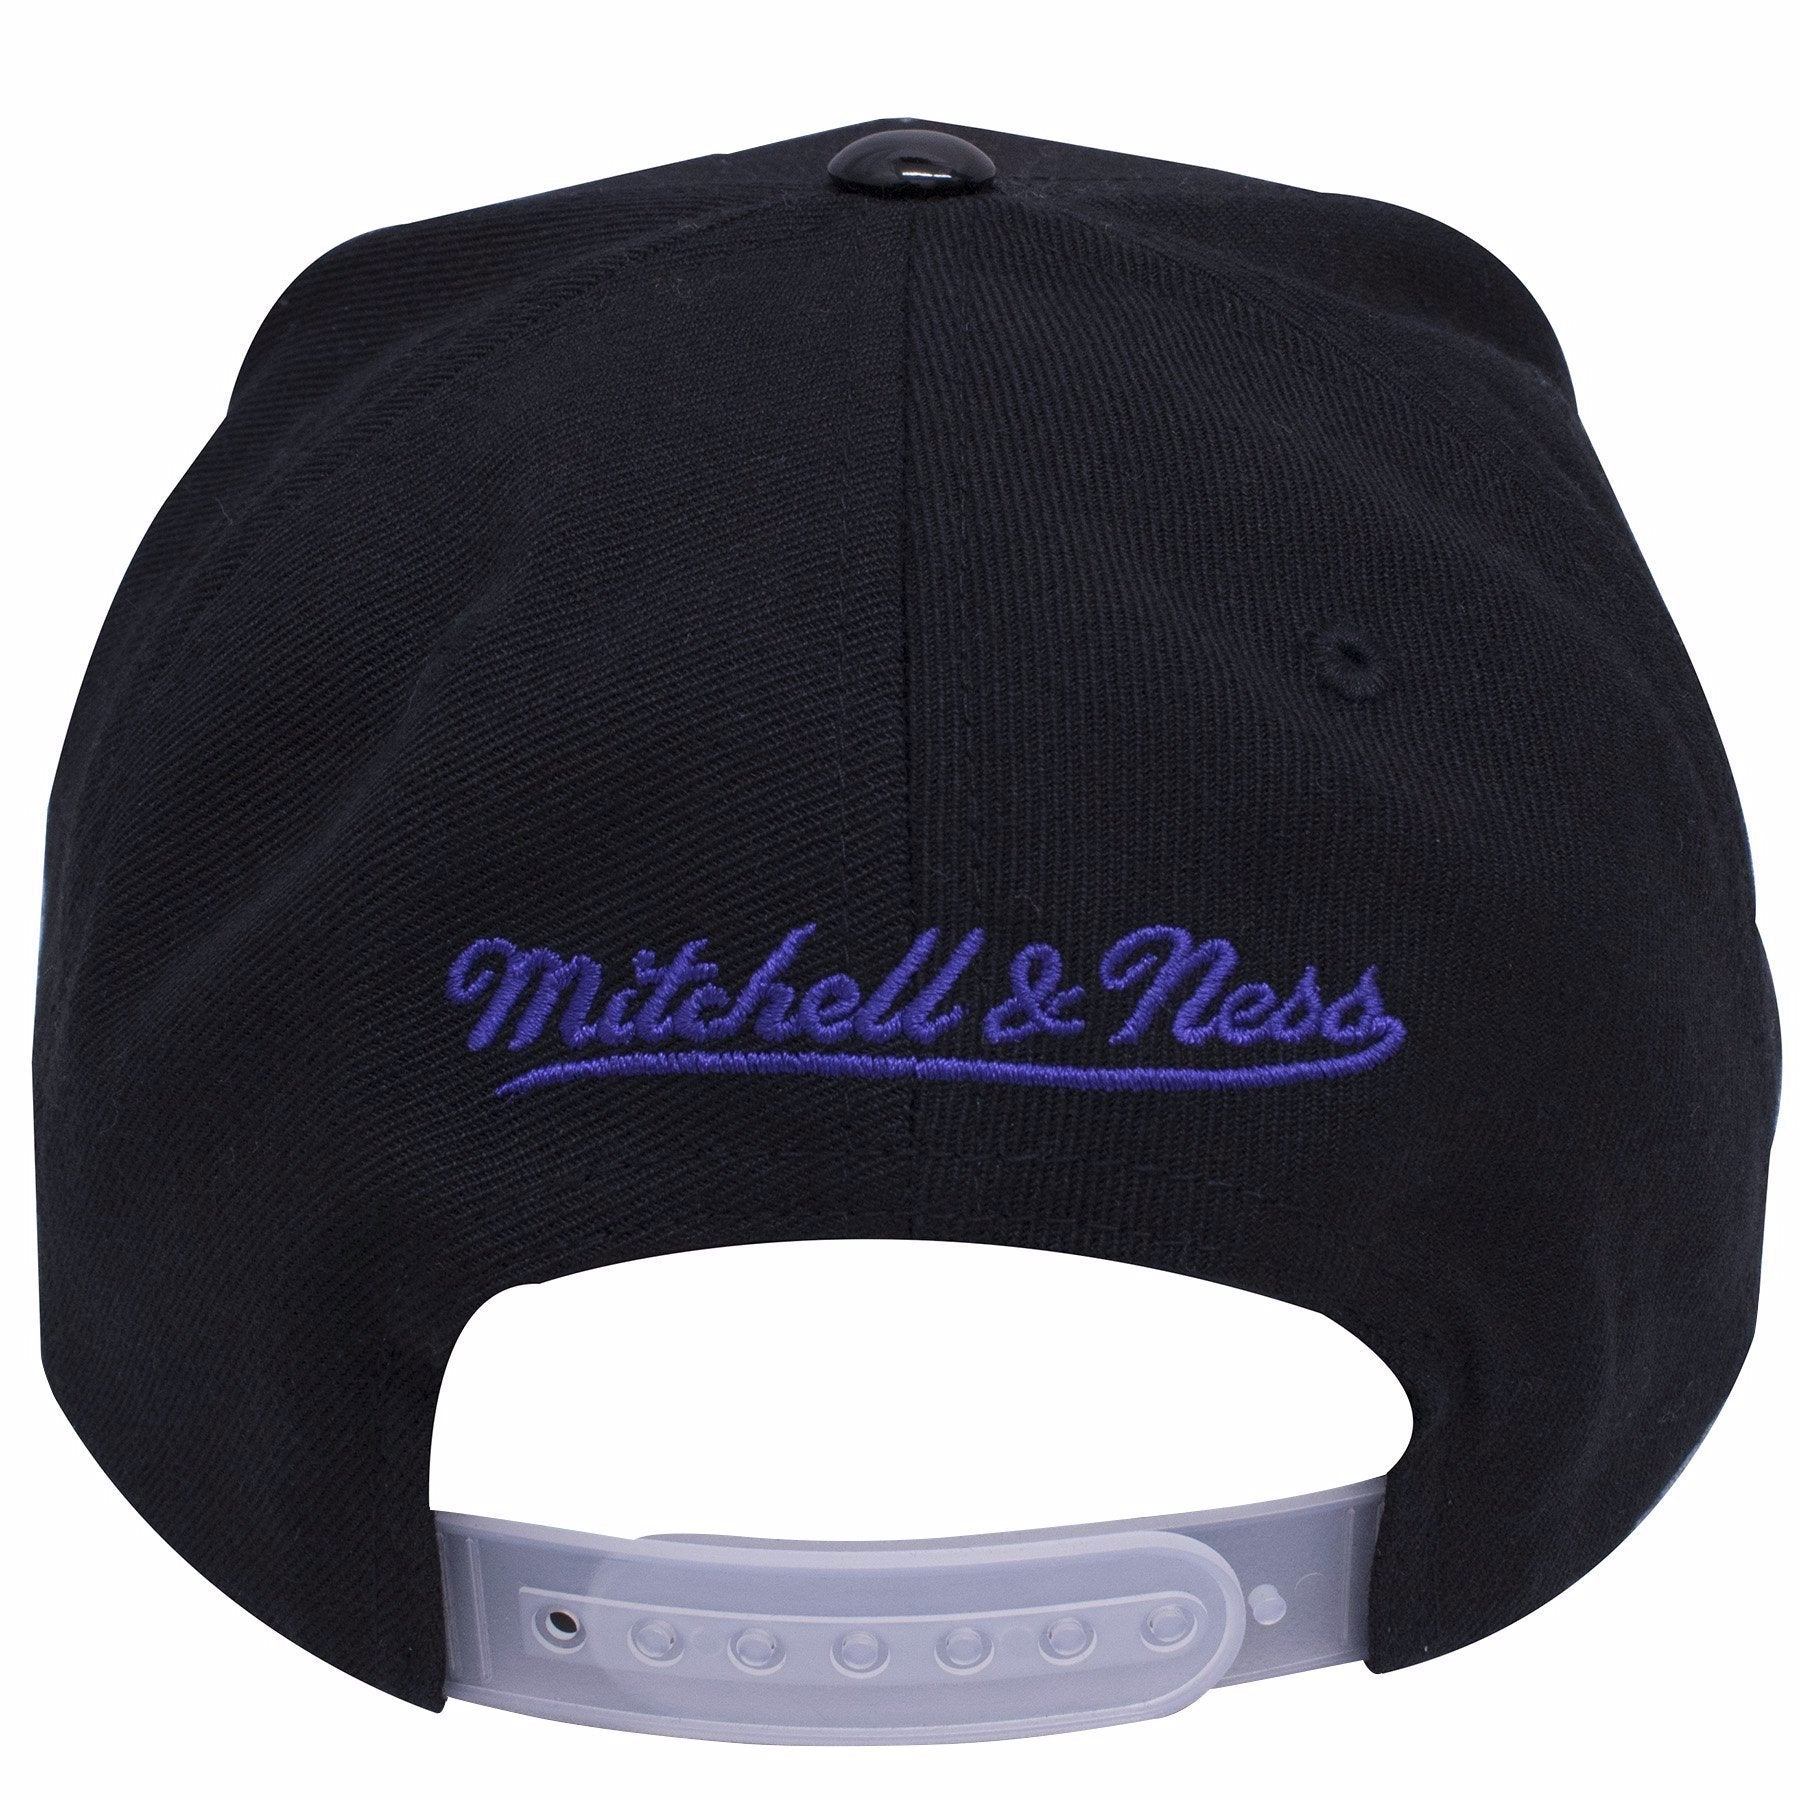 935ccd1f4fa5 ... on the back of the Chicago Bulls Air Jordan 11 Space Jam sneaker  matching snapback hat ...